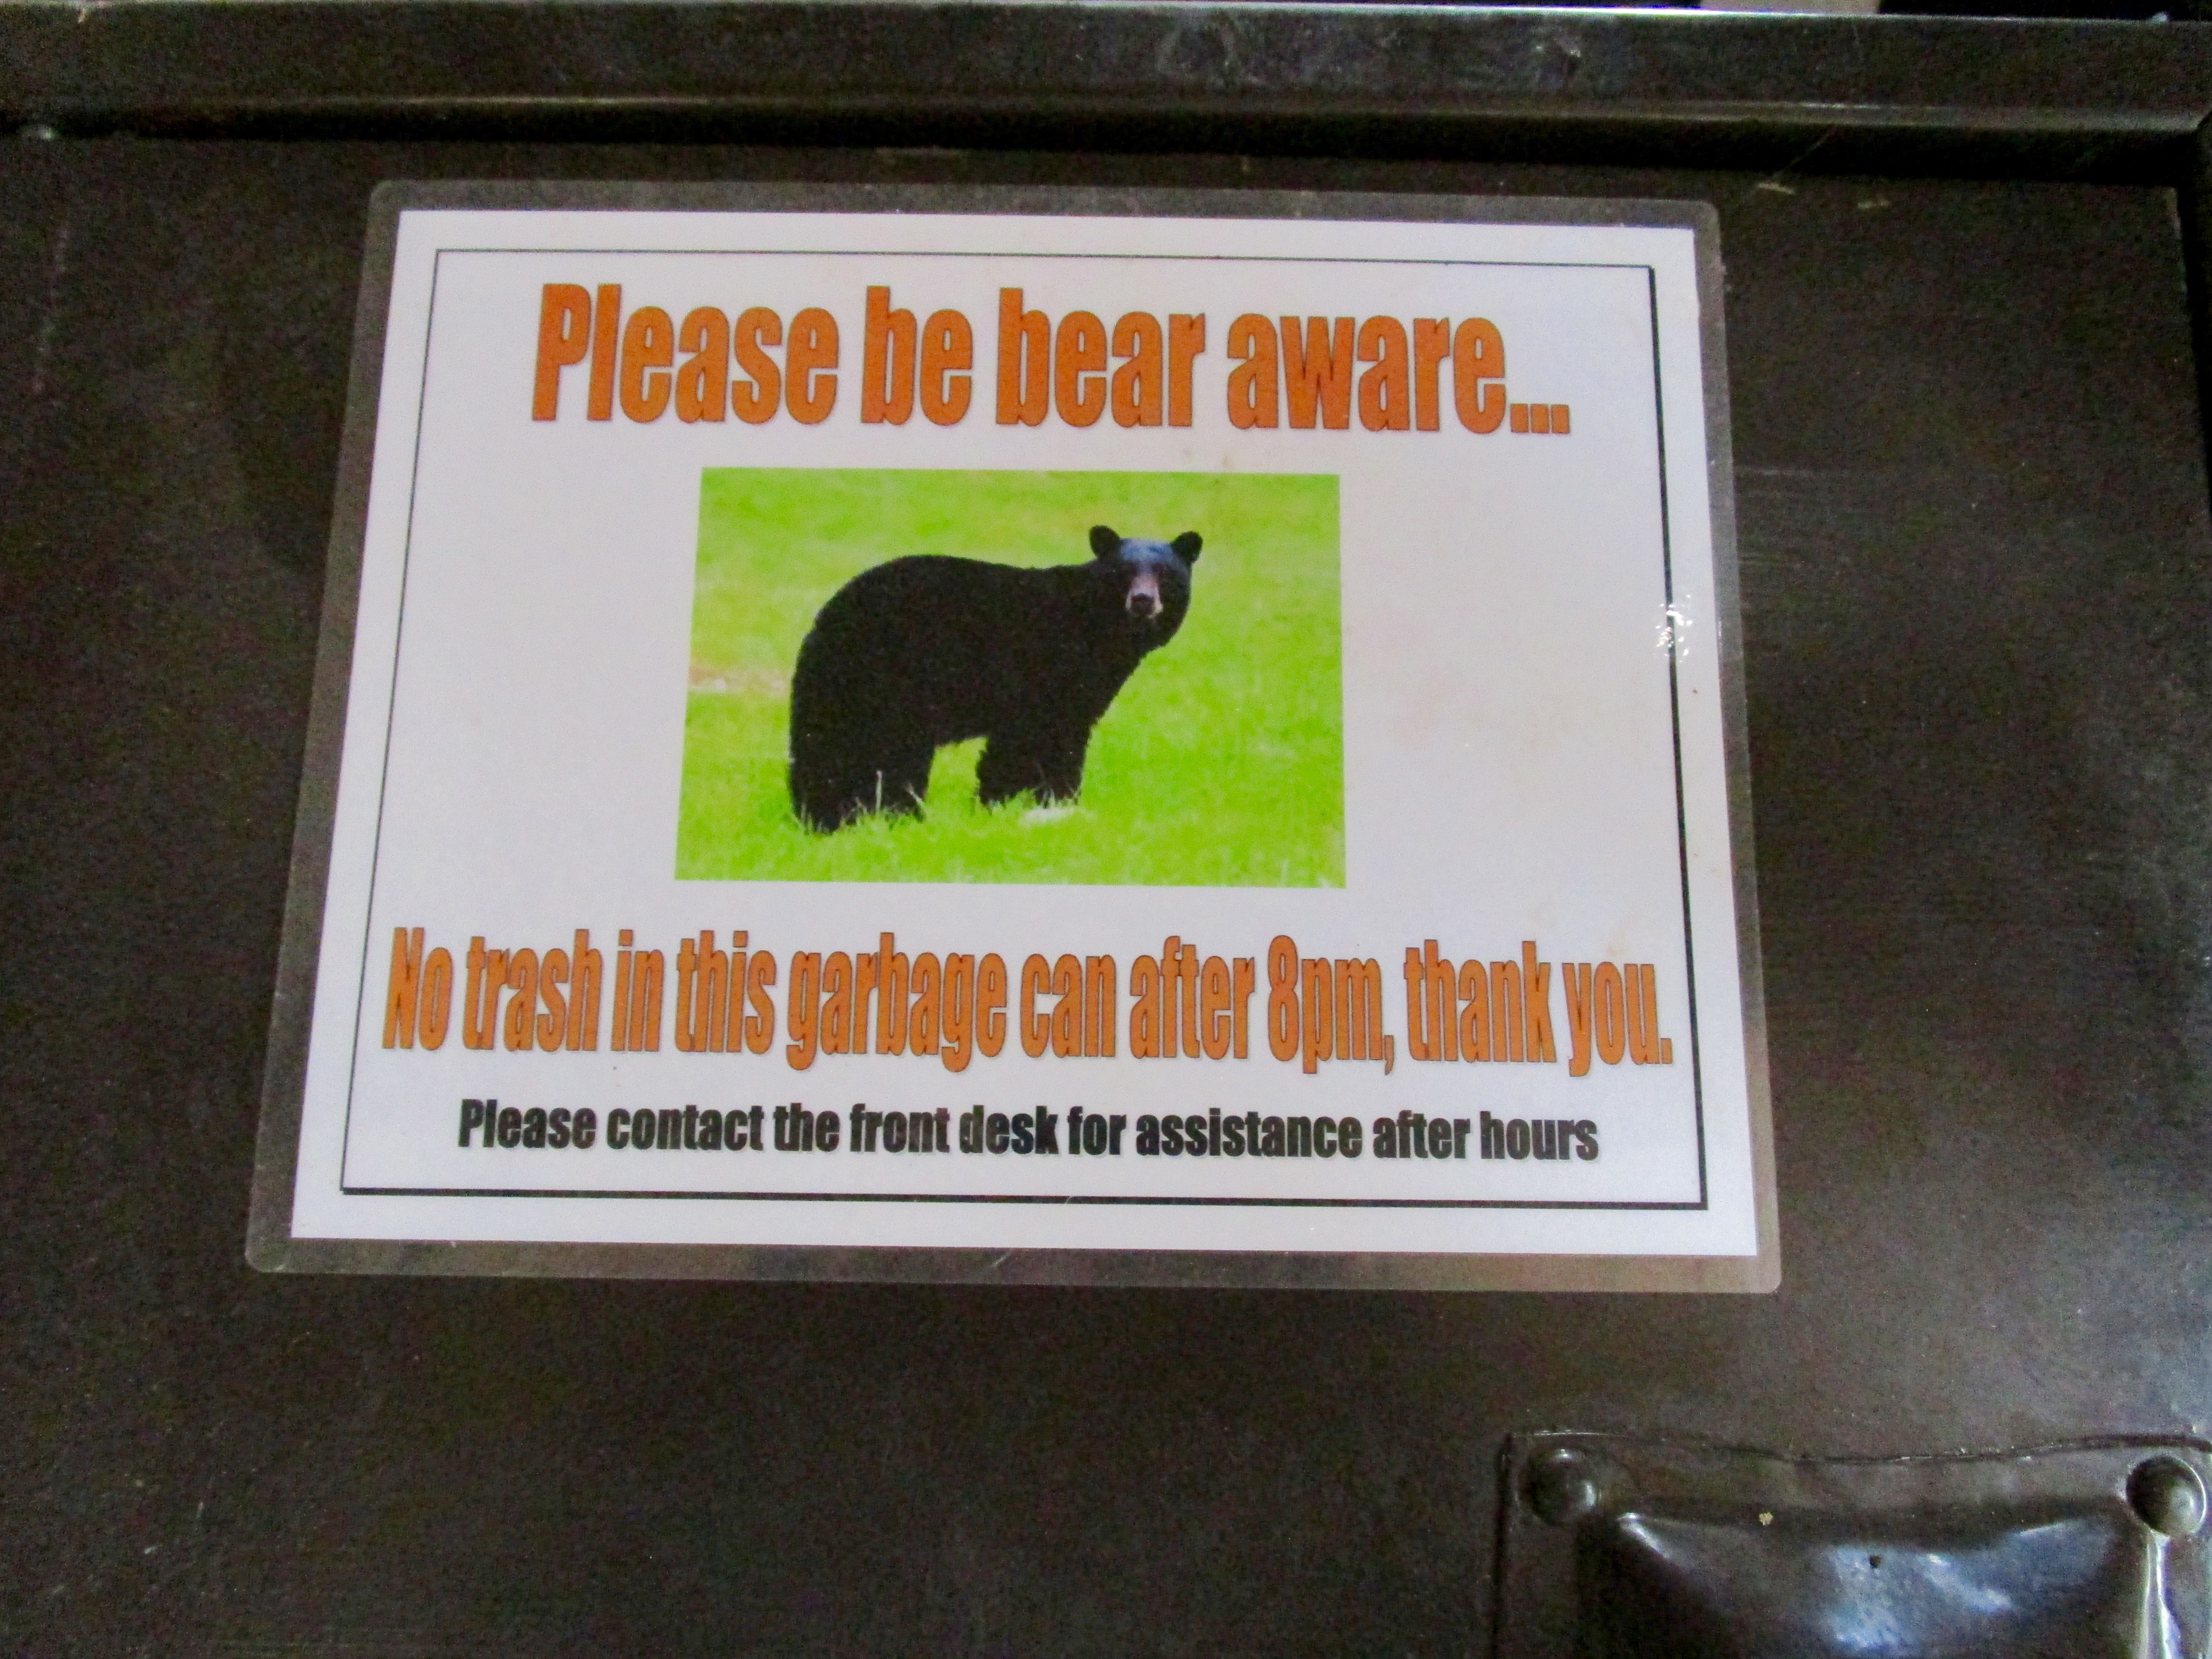 WHAT IS NOT TOTALLY CLEAR ABOUT THIS SIGN WHICH IS POSTED ON TOP OF THE TRASH LID?  A FED BEAR IS A DEAD BEAR.